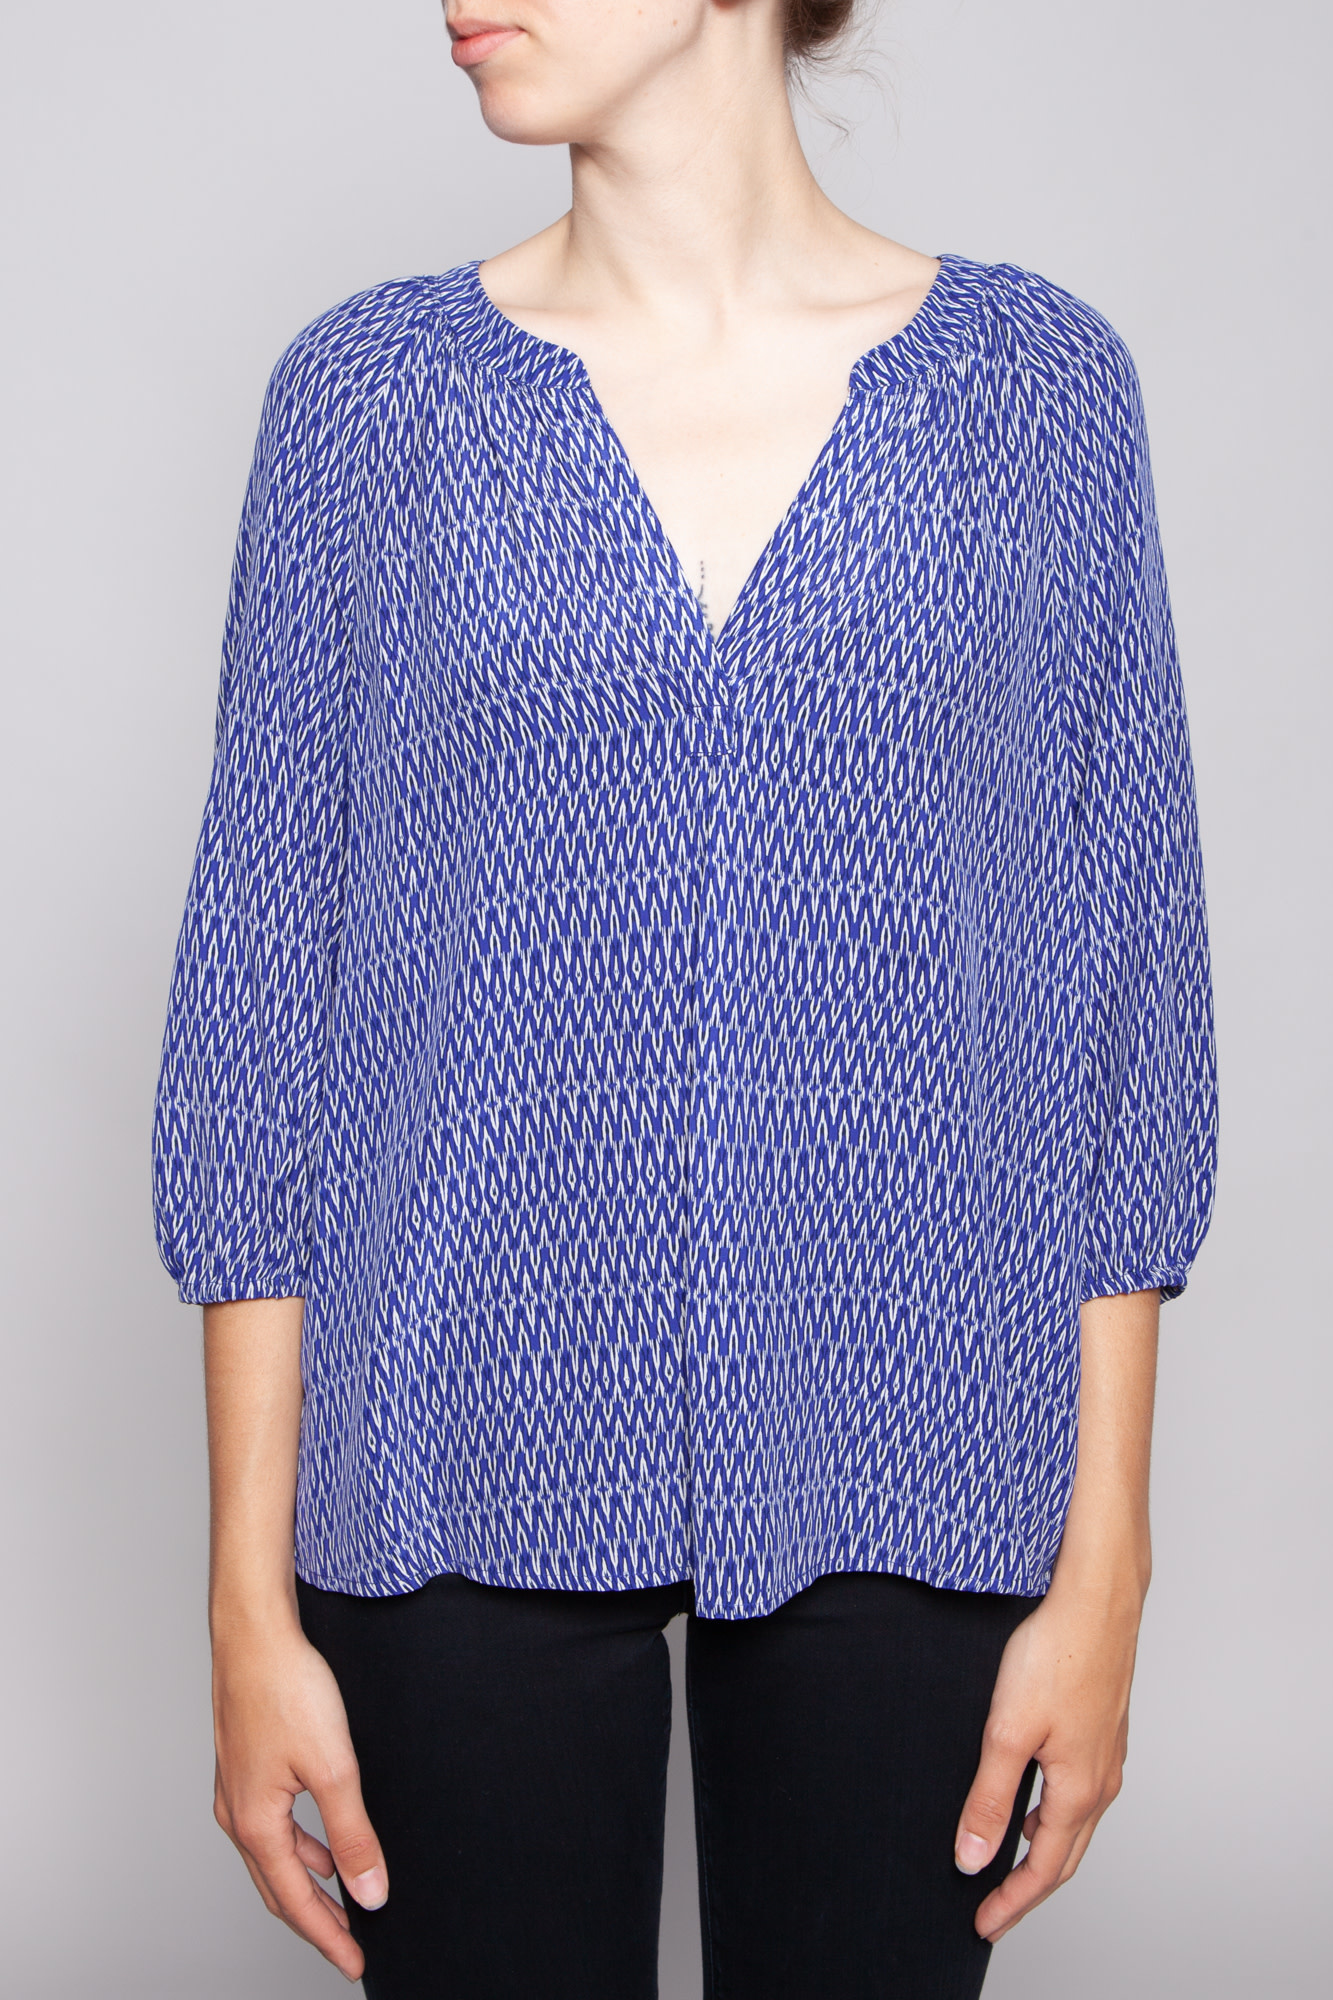 Joie BLUE AND WHITE PRINT SILK TOP